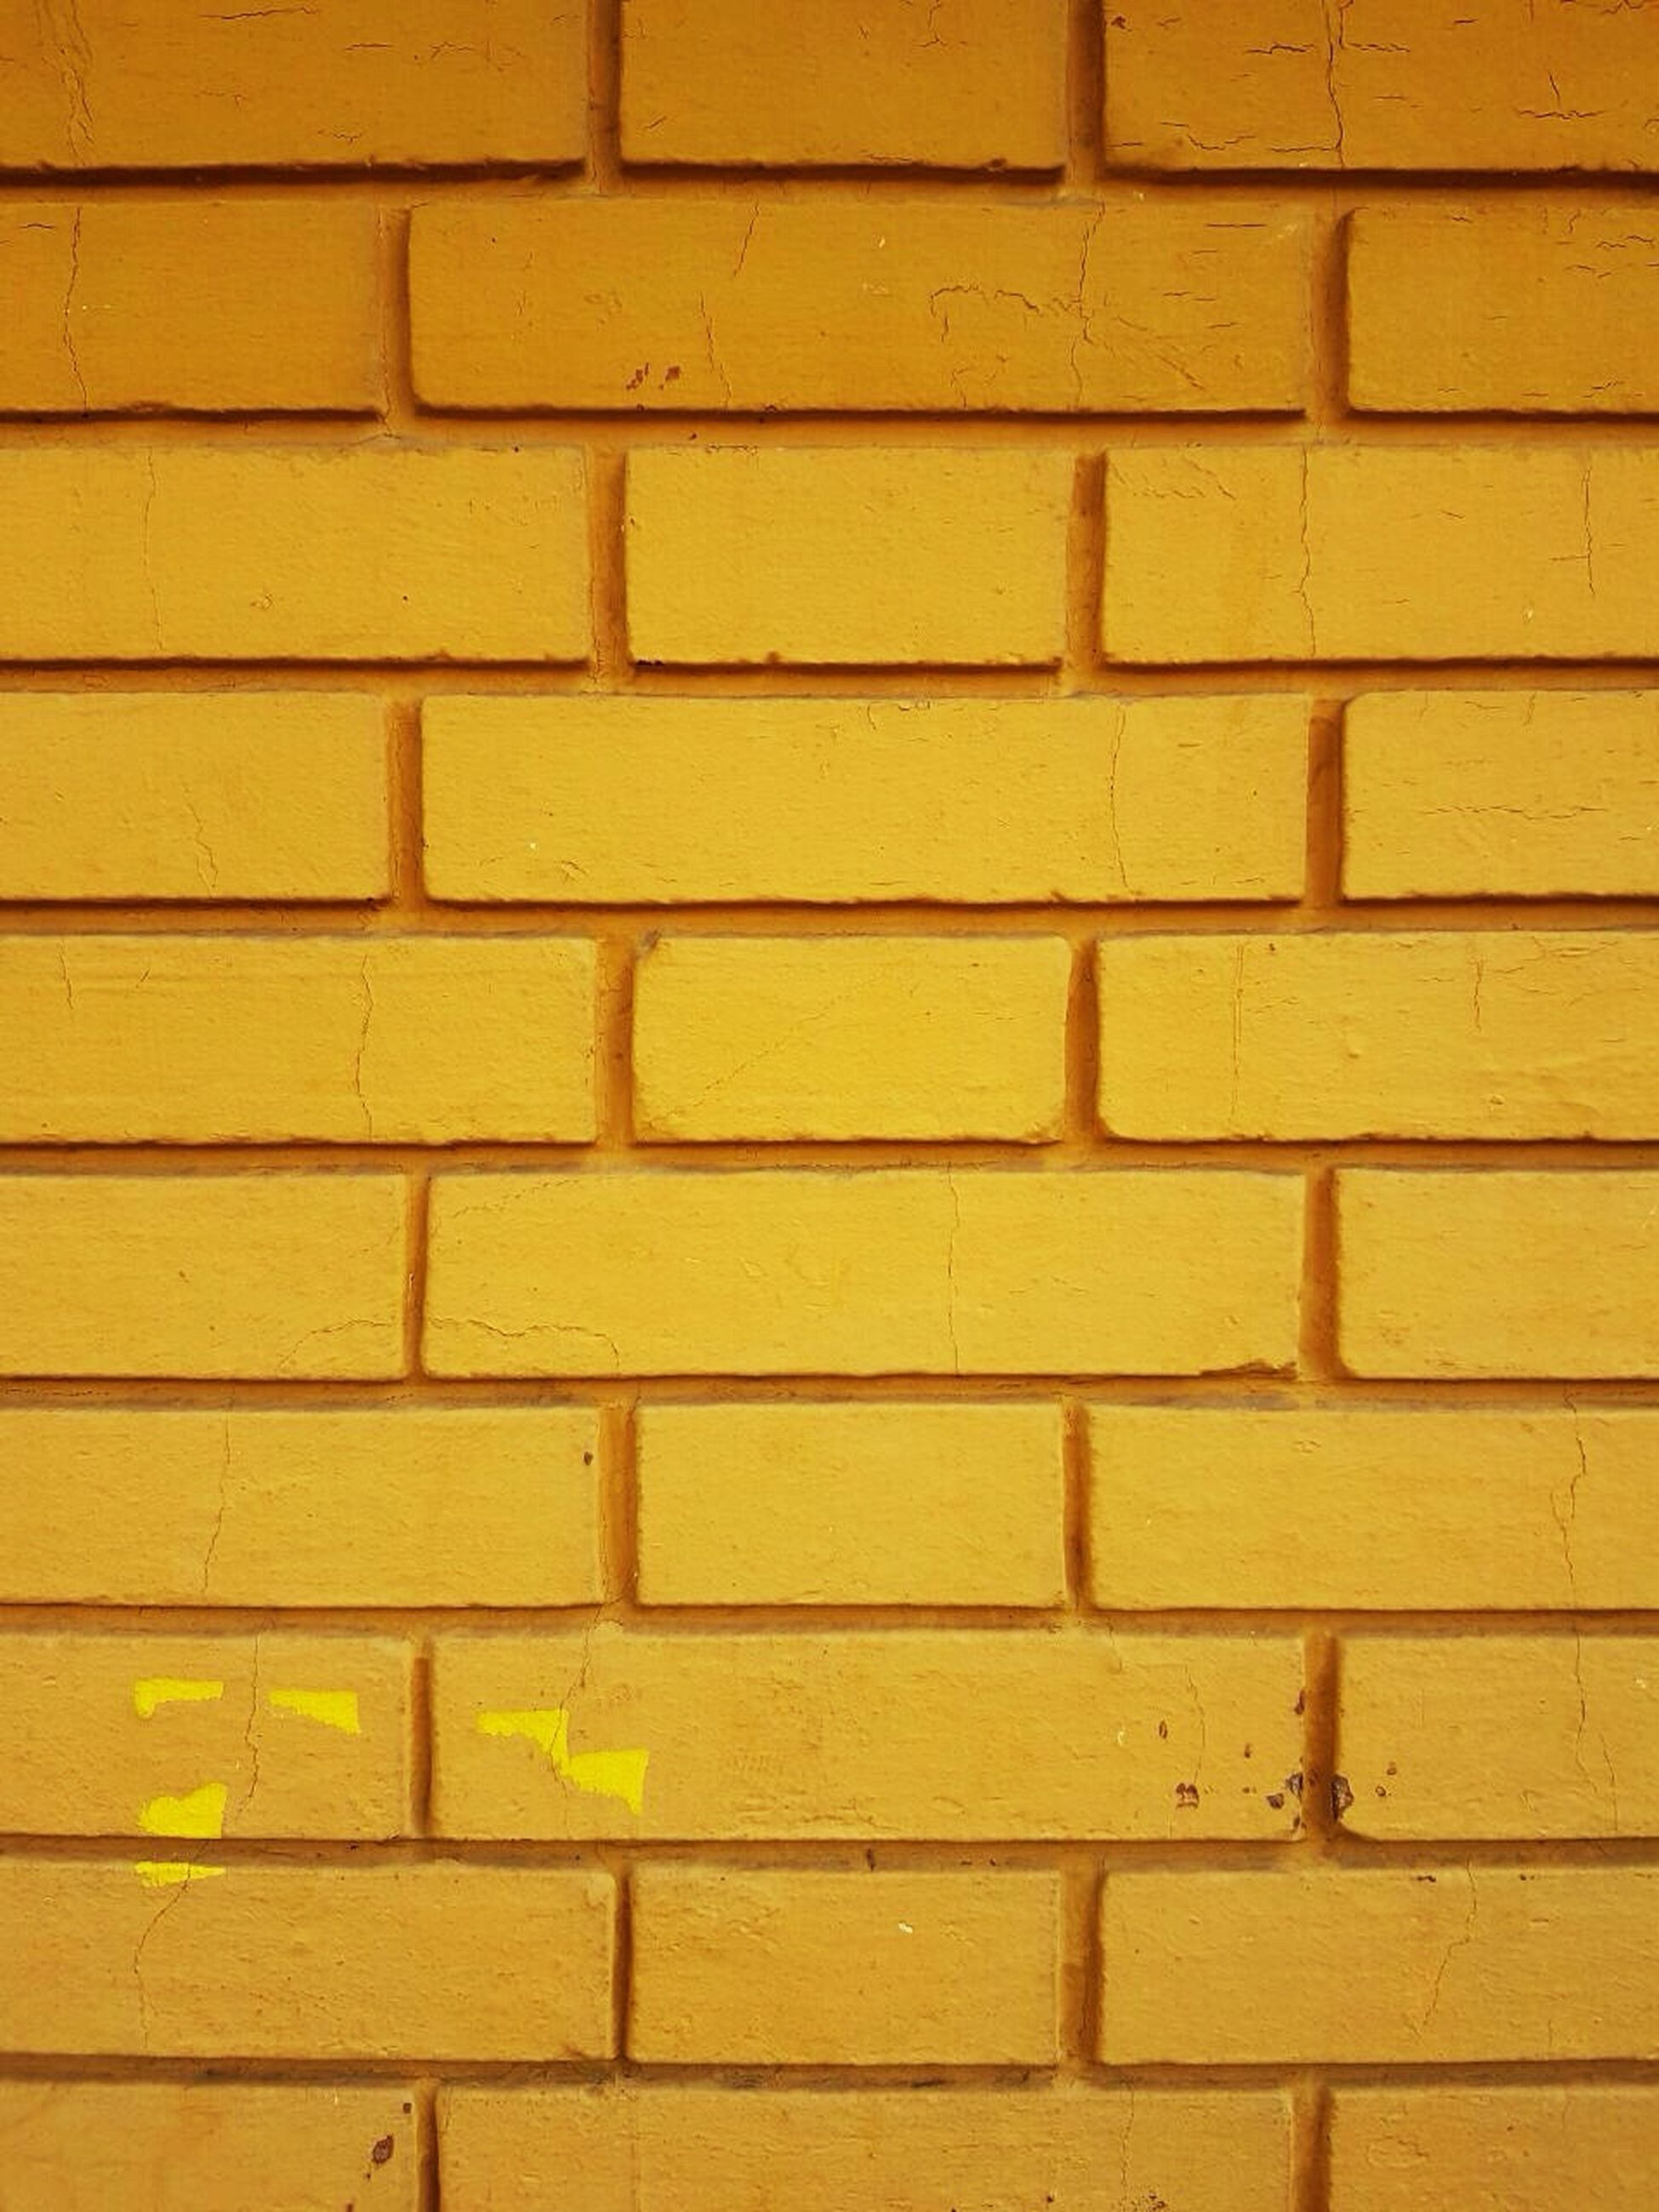 full frame, backgrounds, textured, pattern, yellow, built structure, wall - building feature, brick wall, architecture, close-up, no people, wall, building exterior, outdoors, day, repetition, detail, orange color, design, geometric shape